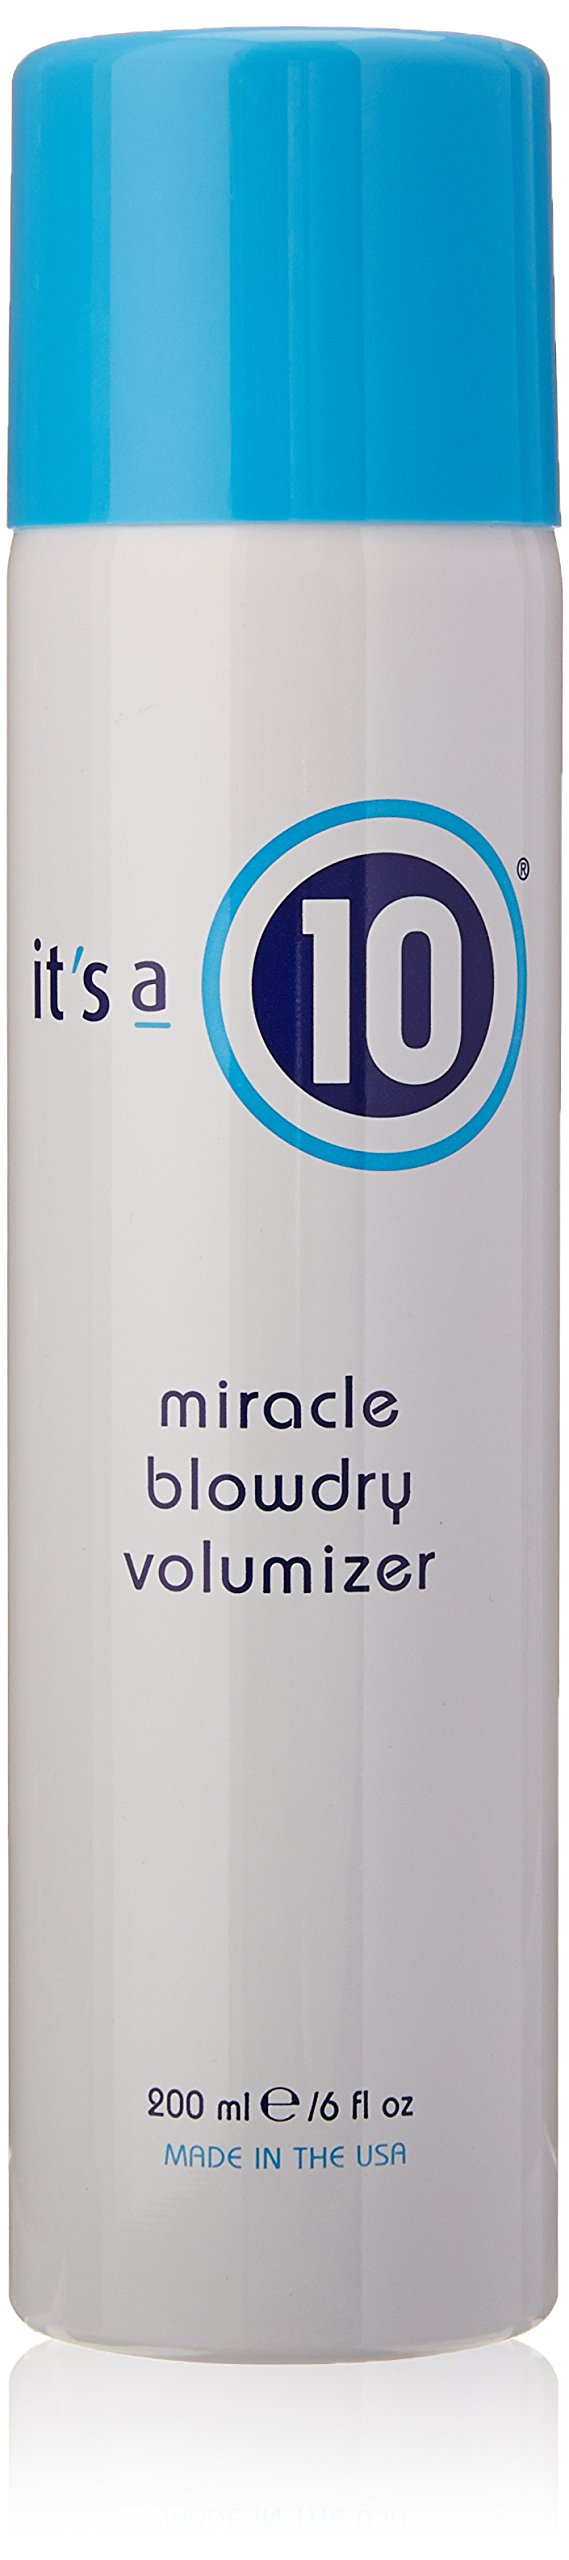 It's a 10 Haircare Miracle Blowdry Volumizer, 6 fl. oz. by It's a 10 Haircare